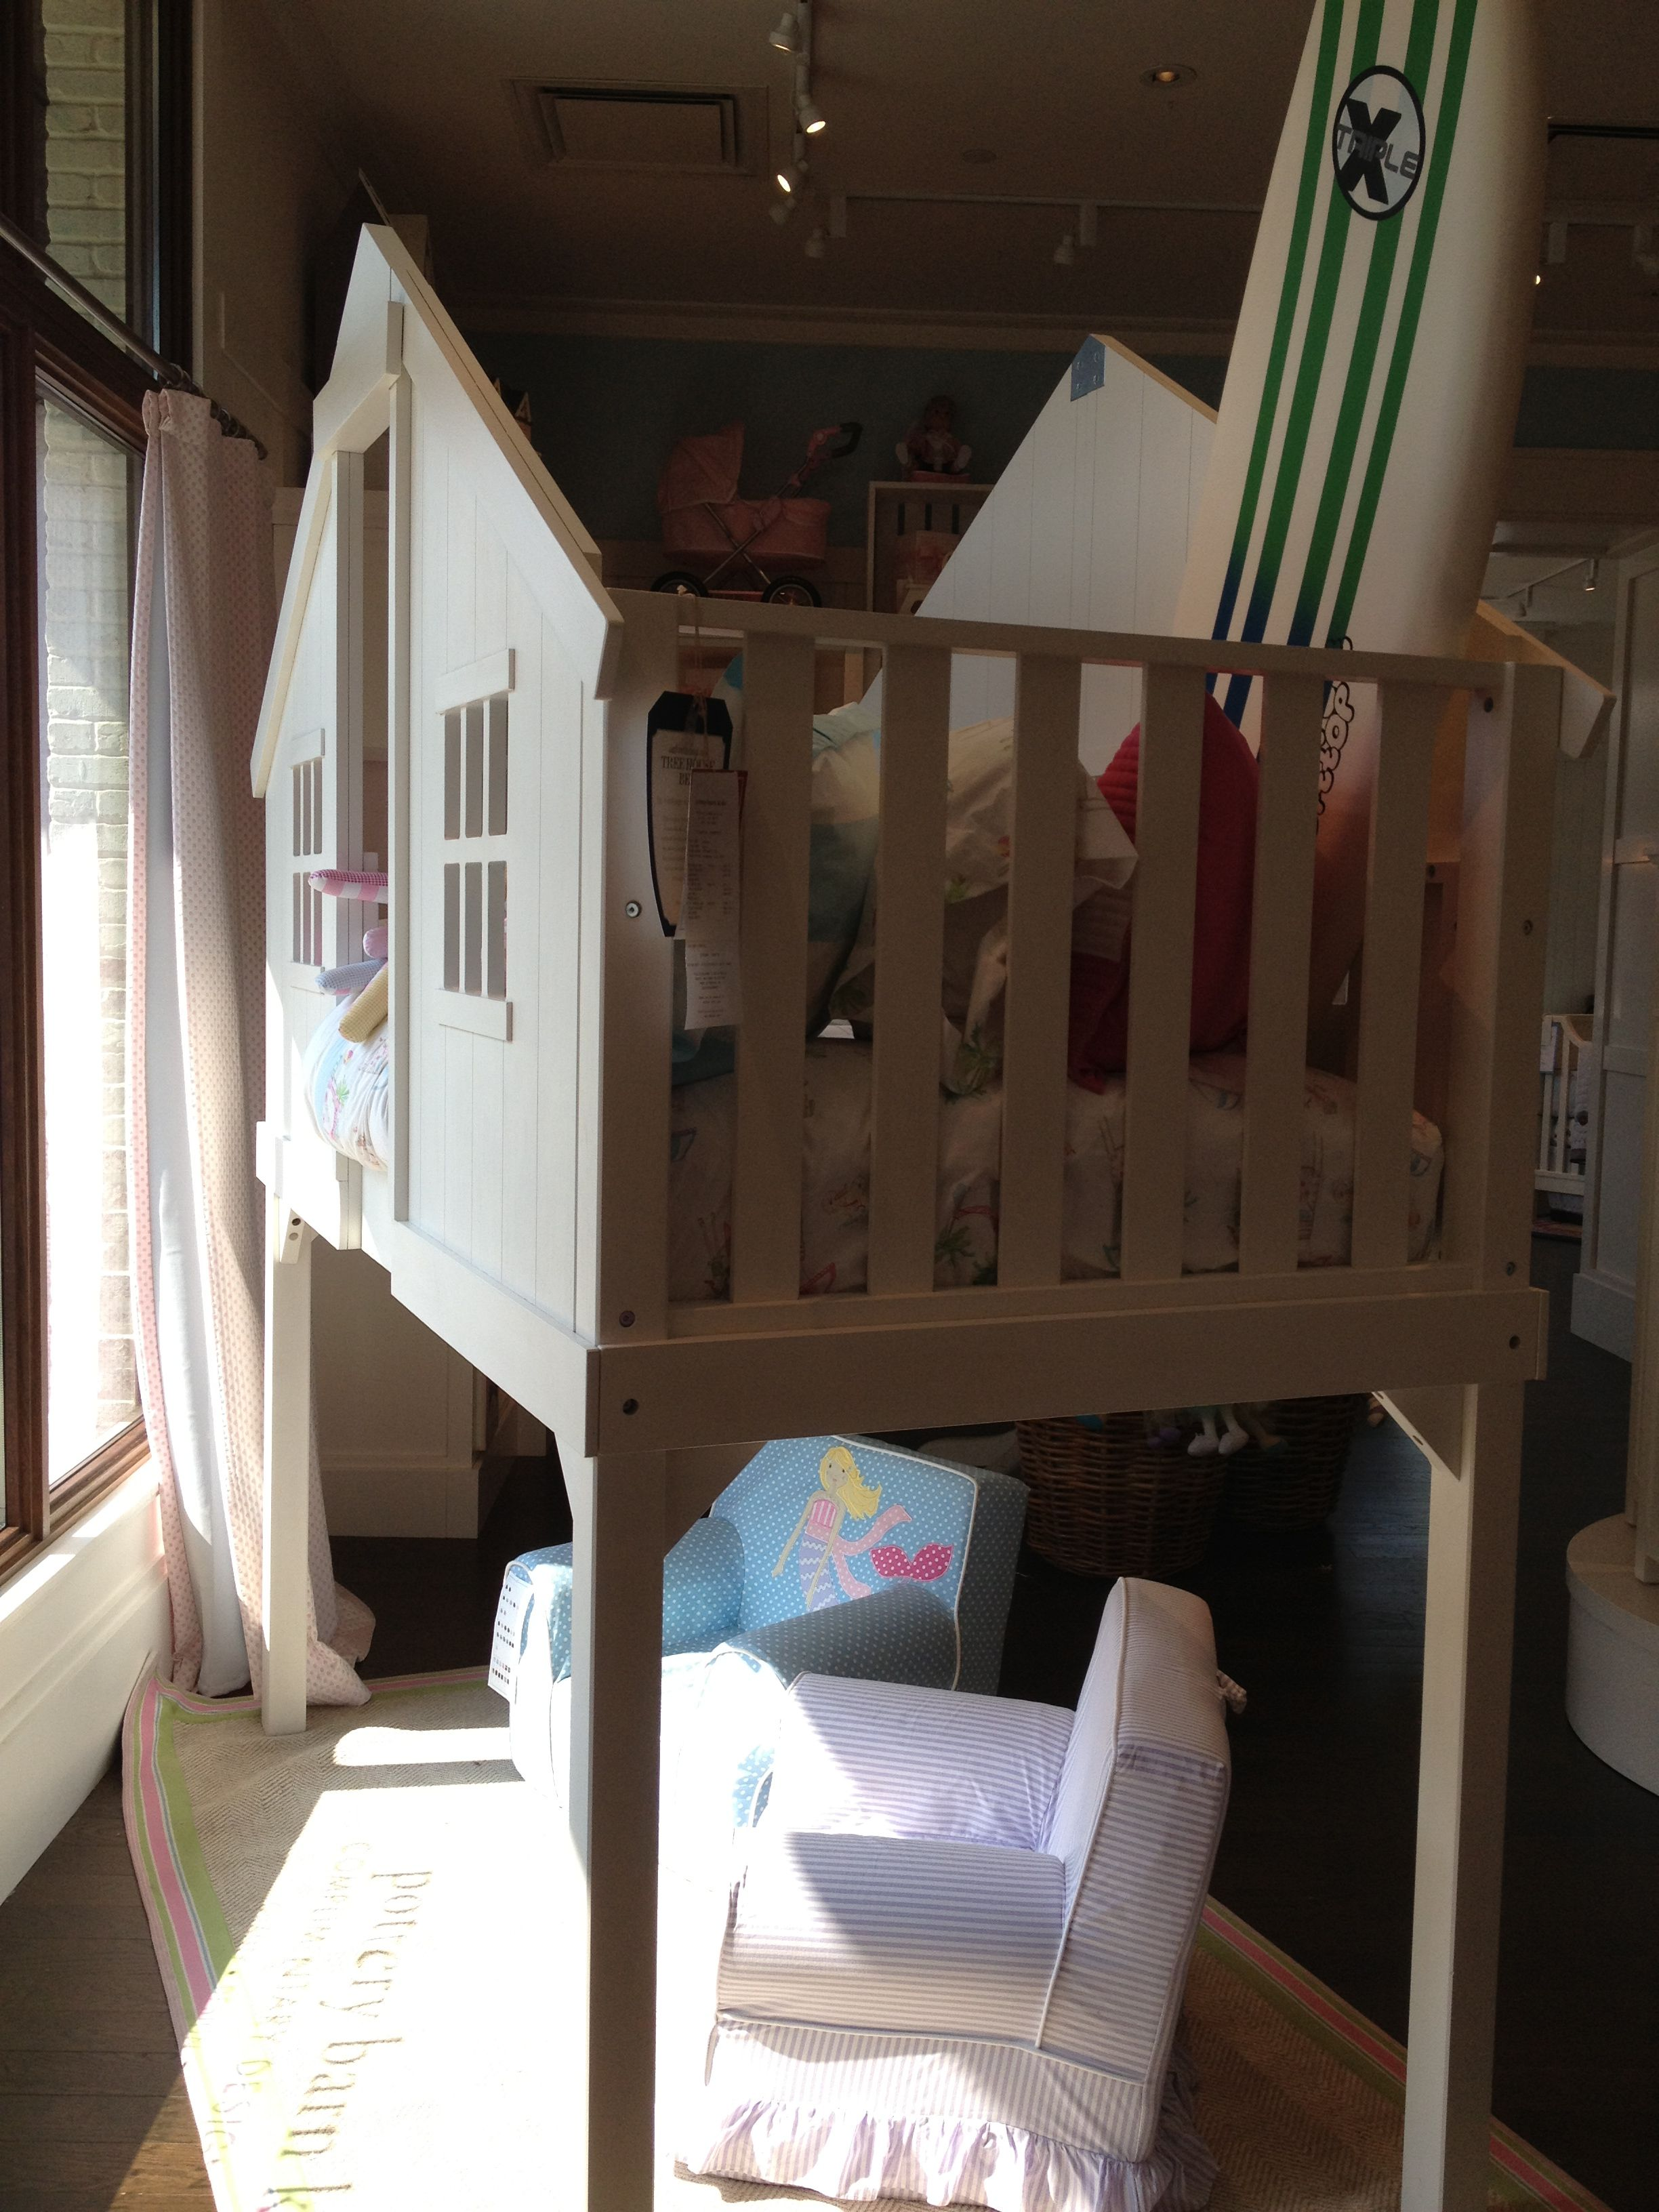 Pottery barn kids camp bed - Pottery Barn White Treehouse Bunk Bed Floor Model Sale 896